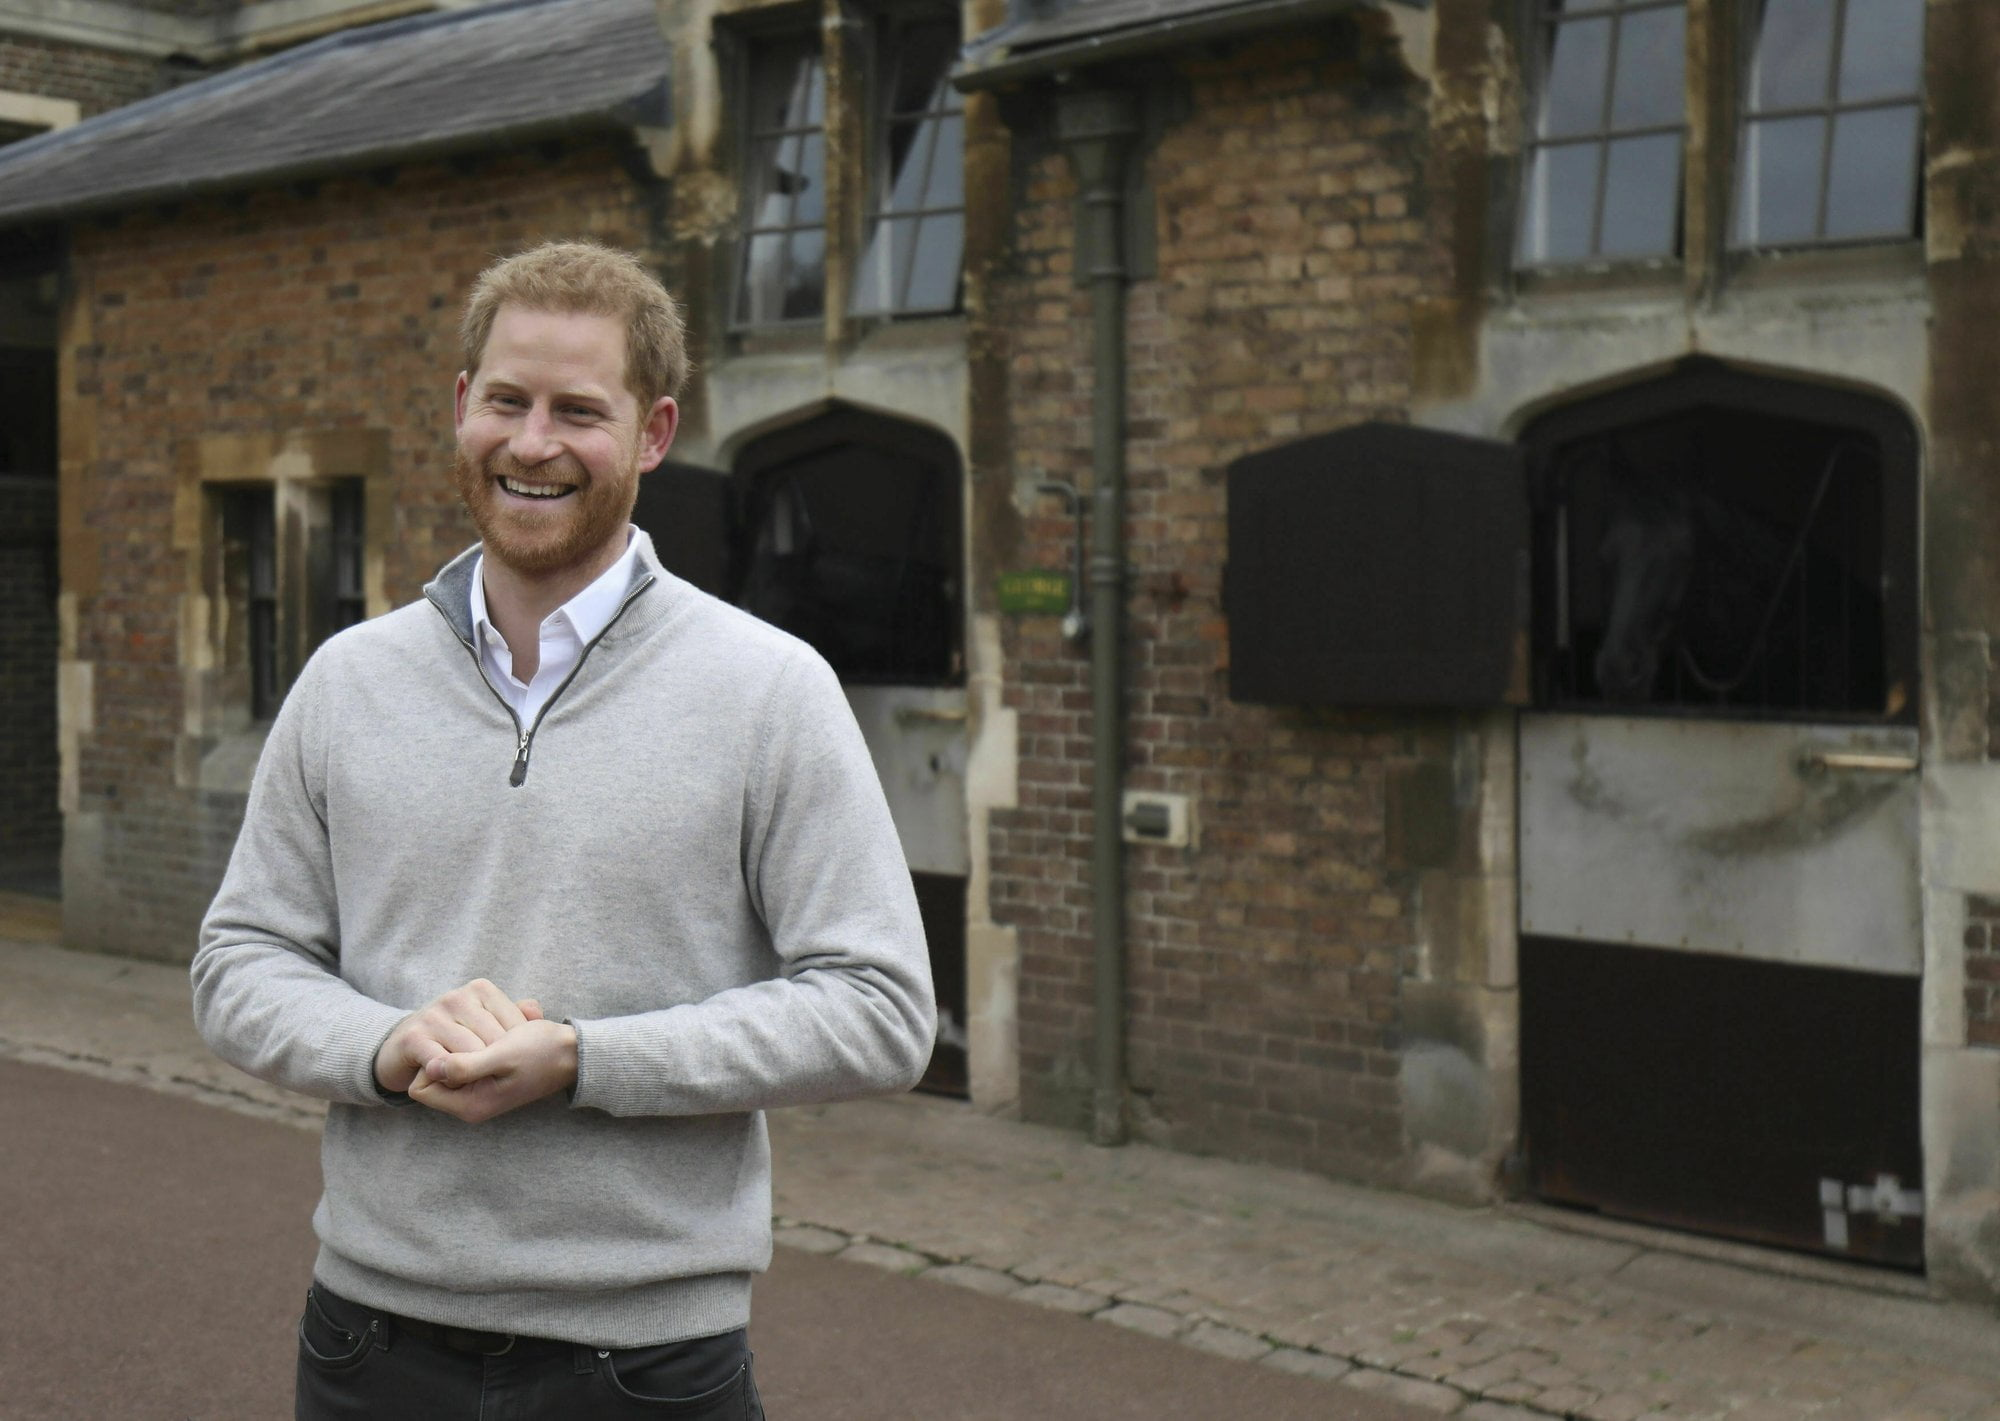 Harry and Meghan love story takes new turn: a baby boy